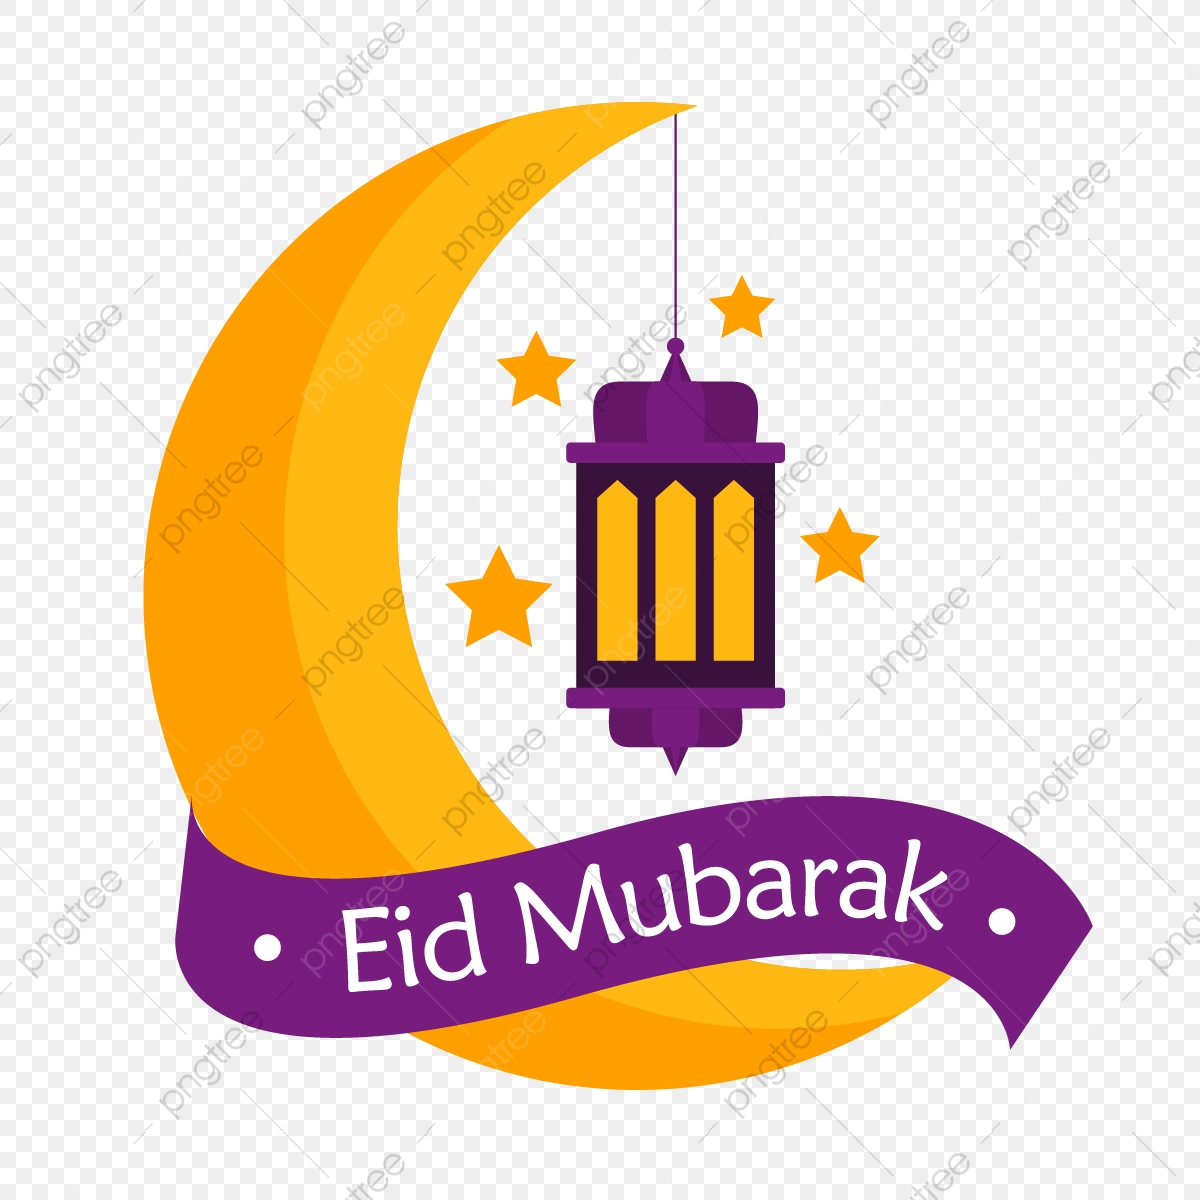 Eid Mubarak Png Images Vector And Psd Files Free Download On Pngtree